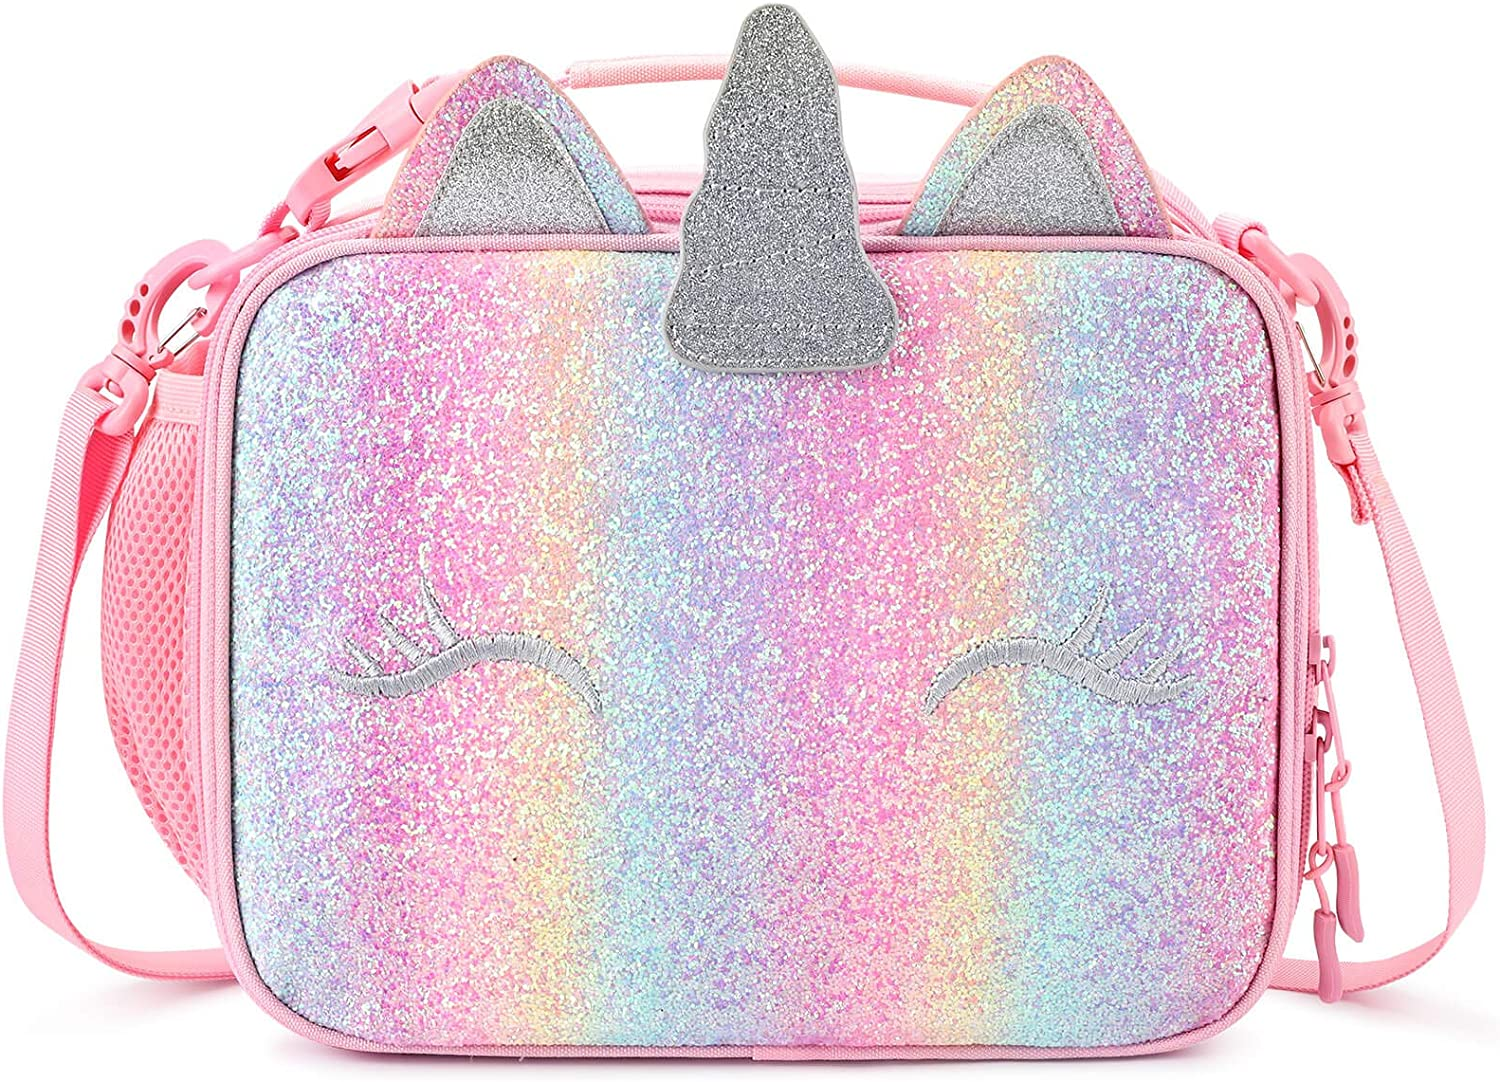 mibasies Kids Insulated Seattle Mall Lunch Box Online limited product Girls for Rainbow Unicorn Bag